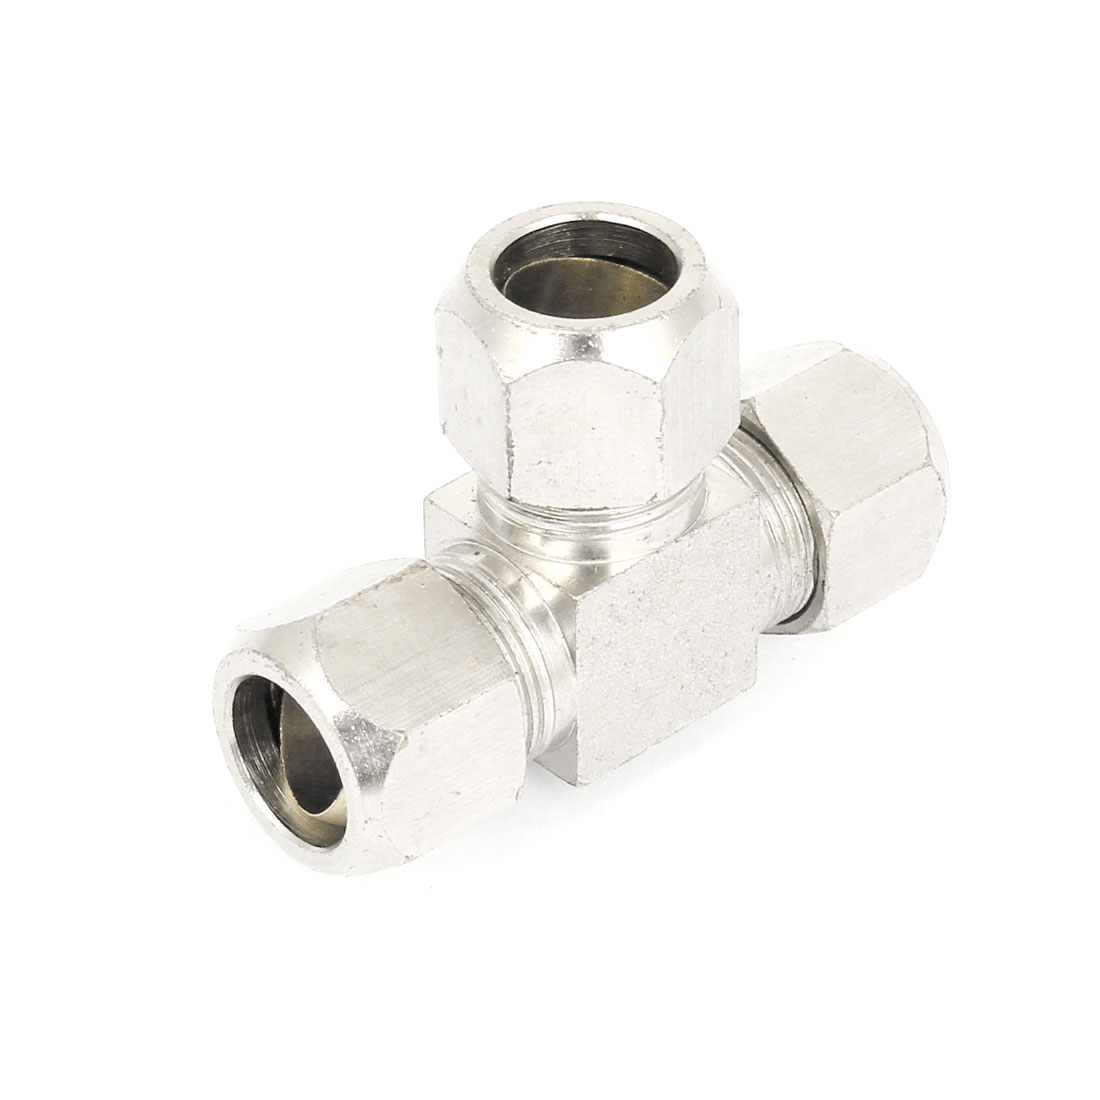 12mm Hose Triple Straight Quick Release Coupler Fitting Joint Pipe Connector Adapter Fastener